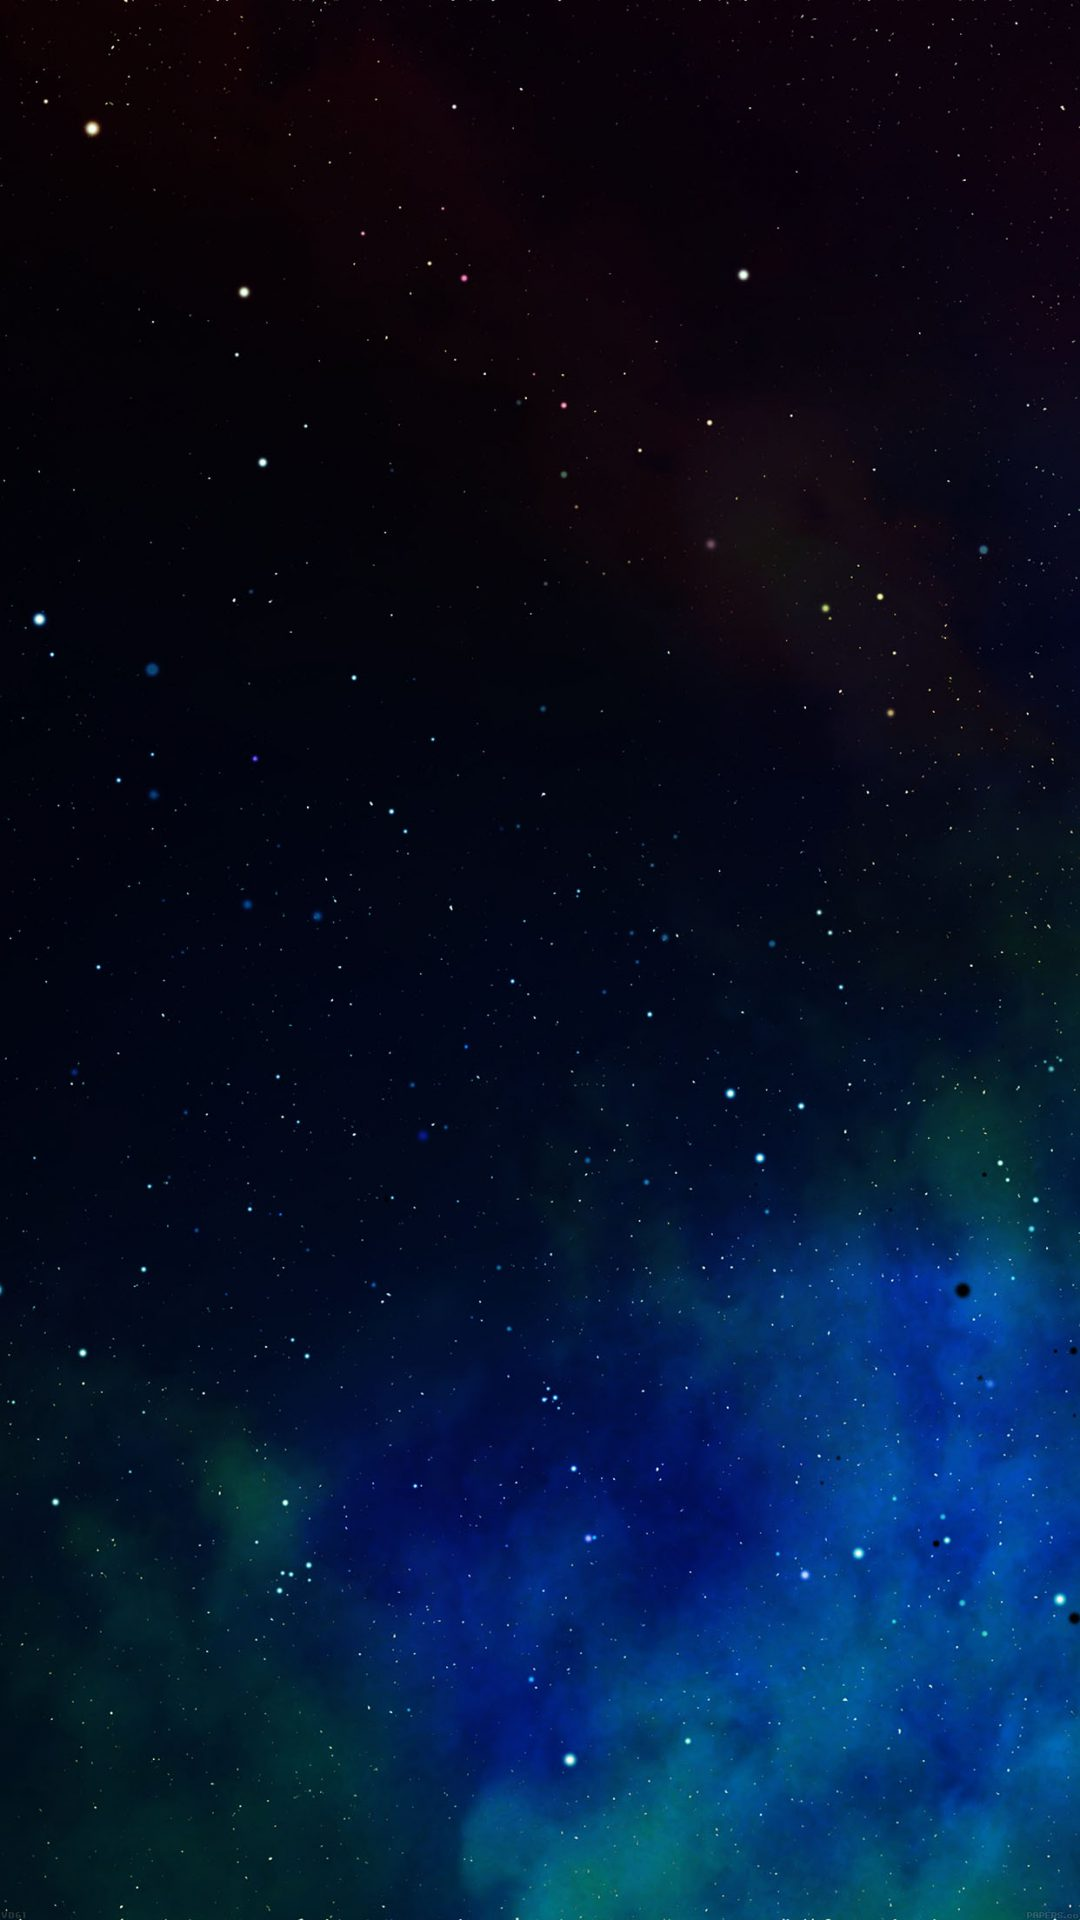 Frontier Iphone Space Colorful Star Nebula